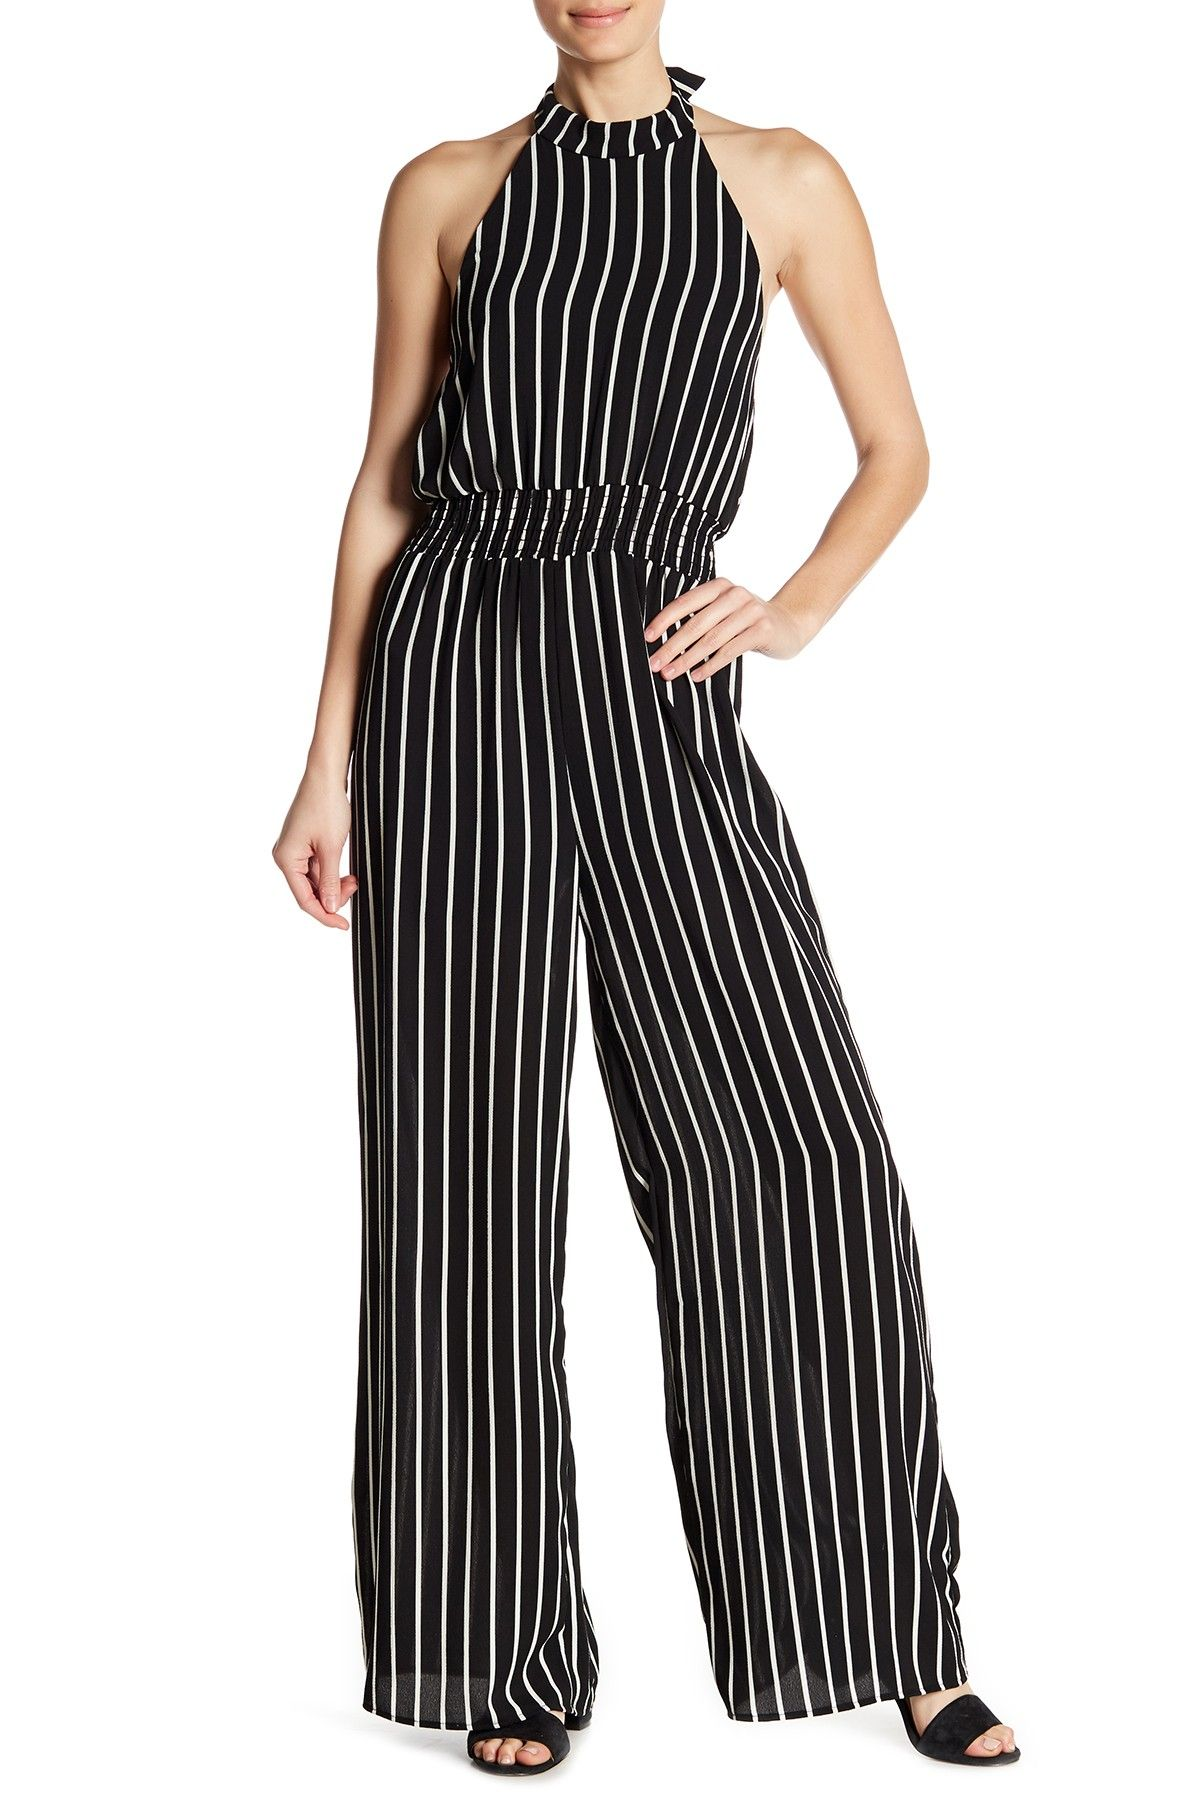 2dceacb7aae Striped Halter Jumpsuit by SUPERFOXX on  nordstrom rack